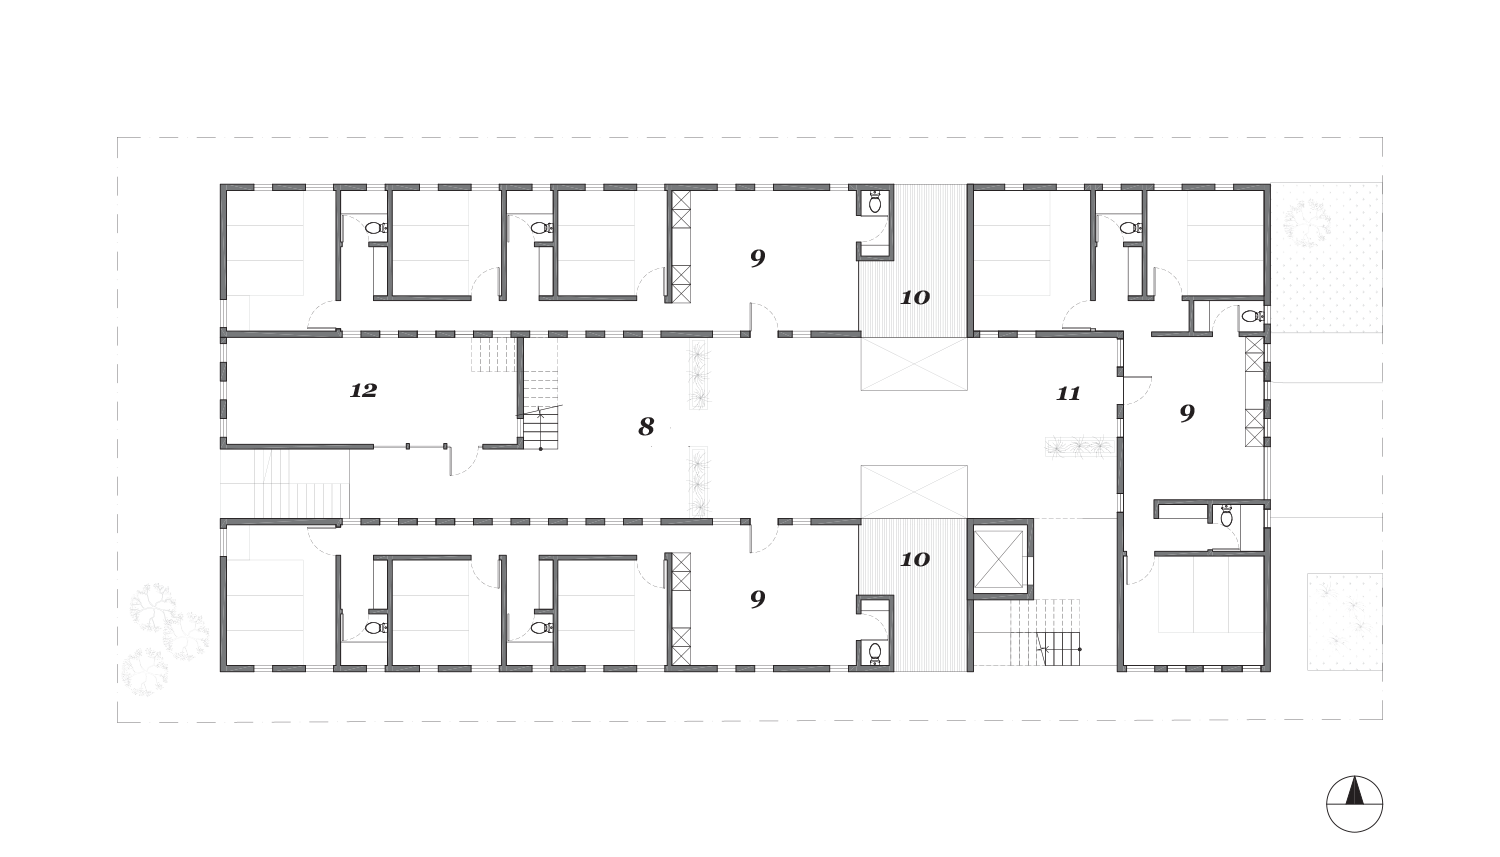 Level 02   1.  Lobby  2.  Parking  3.  Laundry  4.  Trash  5.  Mechanical  6.  Storage  7.  Dog Run  8.  Social Courtyard  9.  3br Unit  10.  Private Patio  11.  Semi-private Porch  12.  Recording Studio  13.  Entertainment Kitchen  14.  Co-working Space  15.  Roof Deck